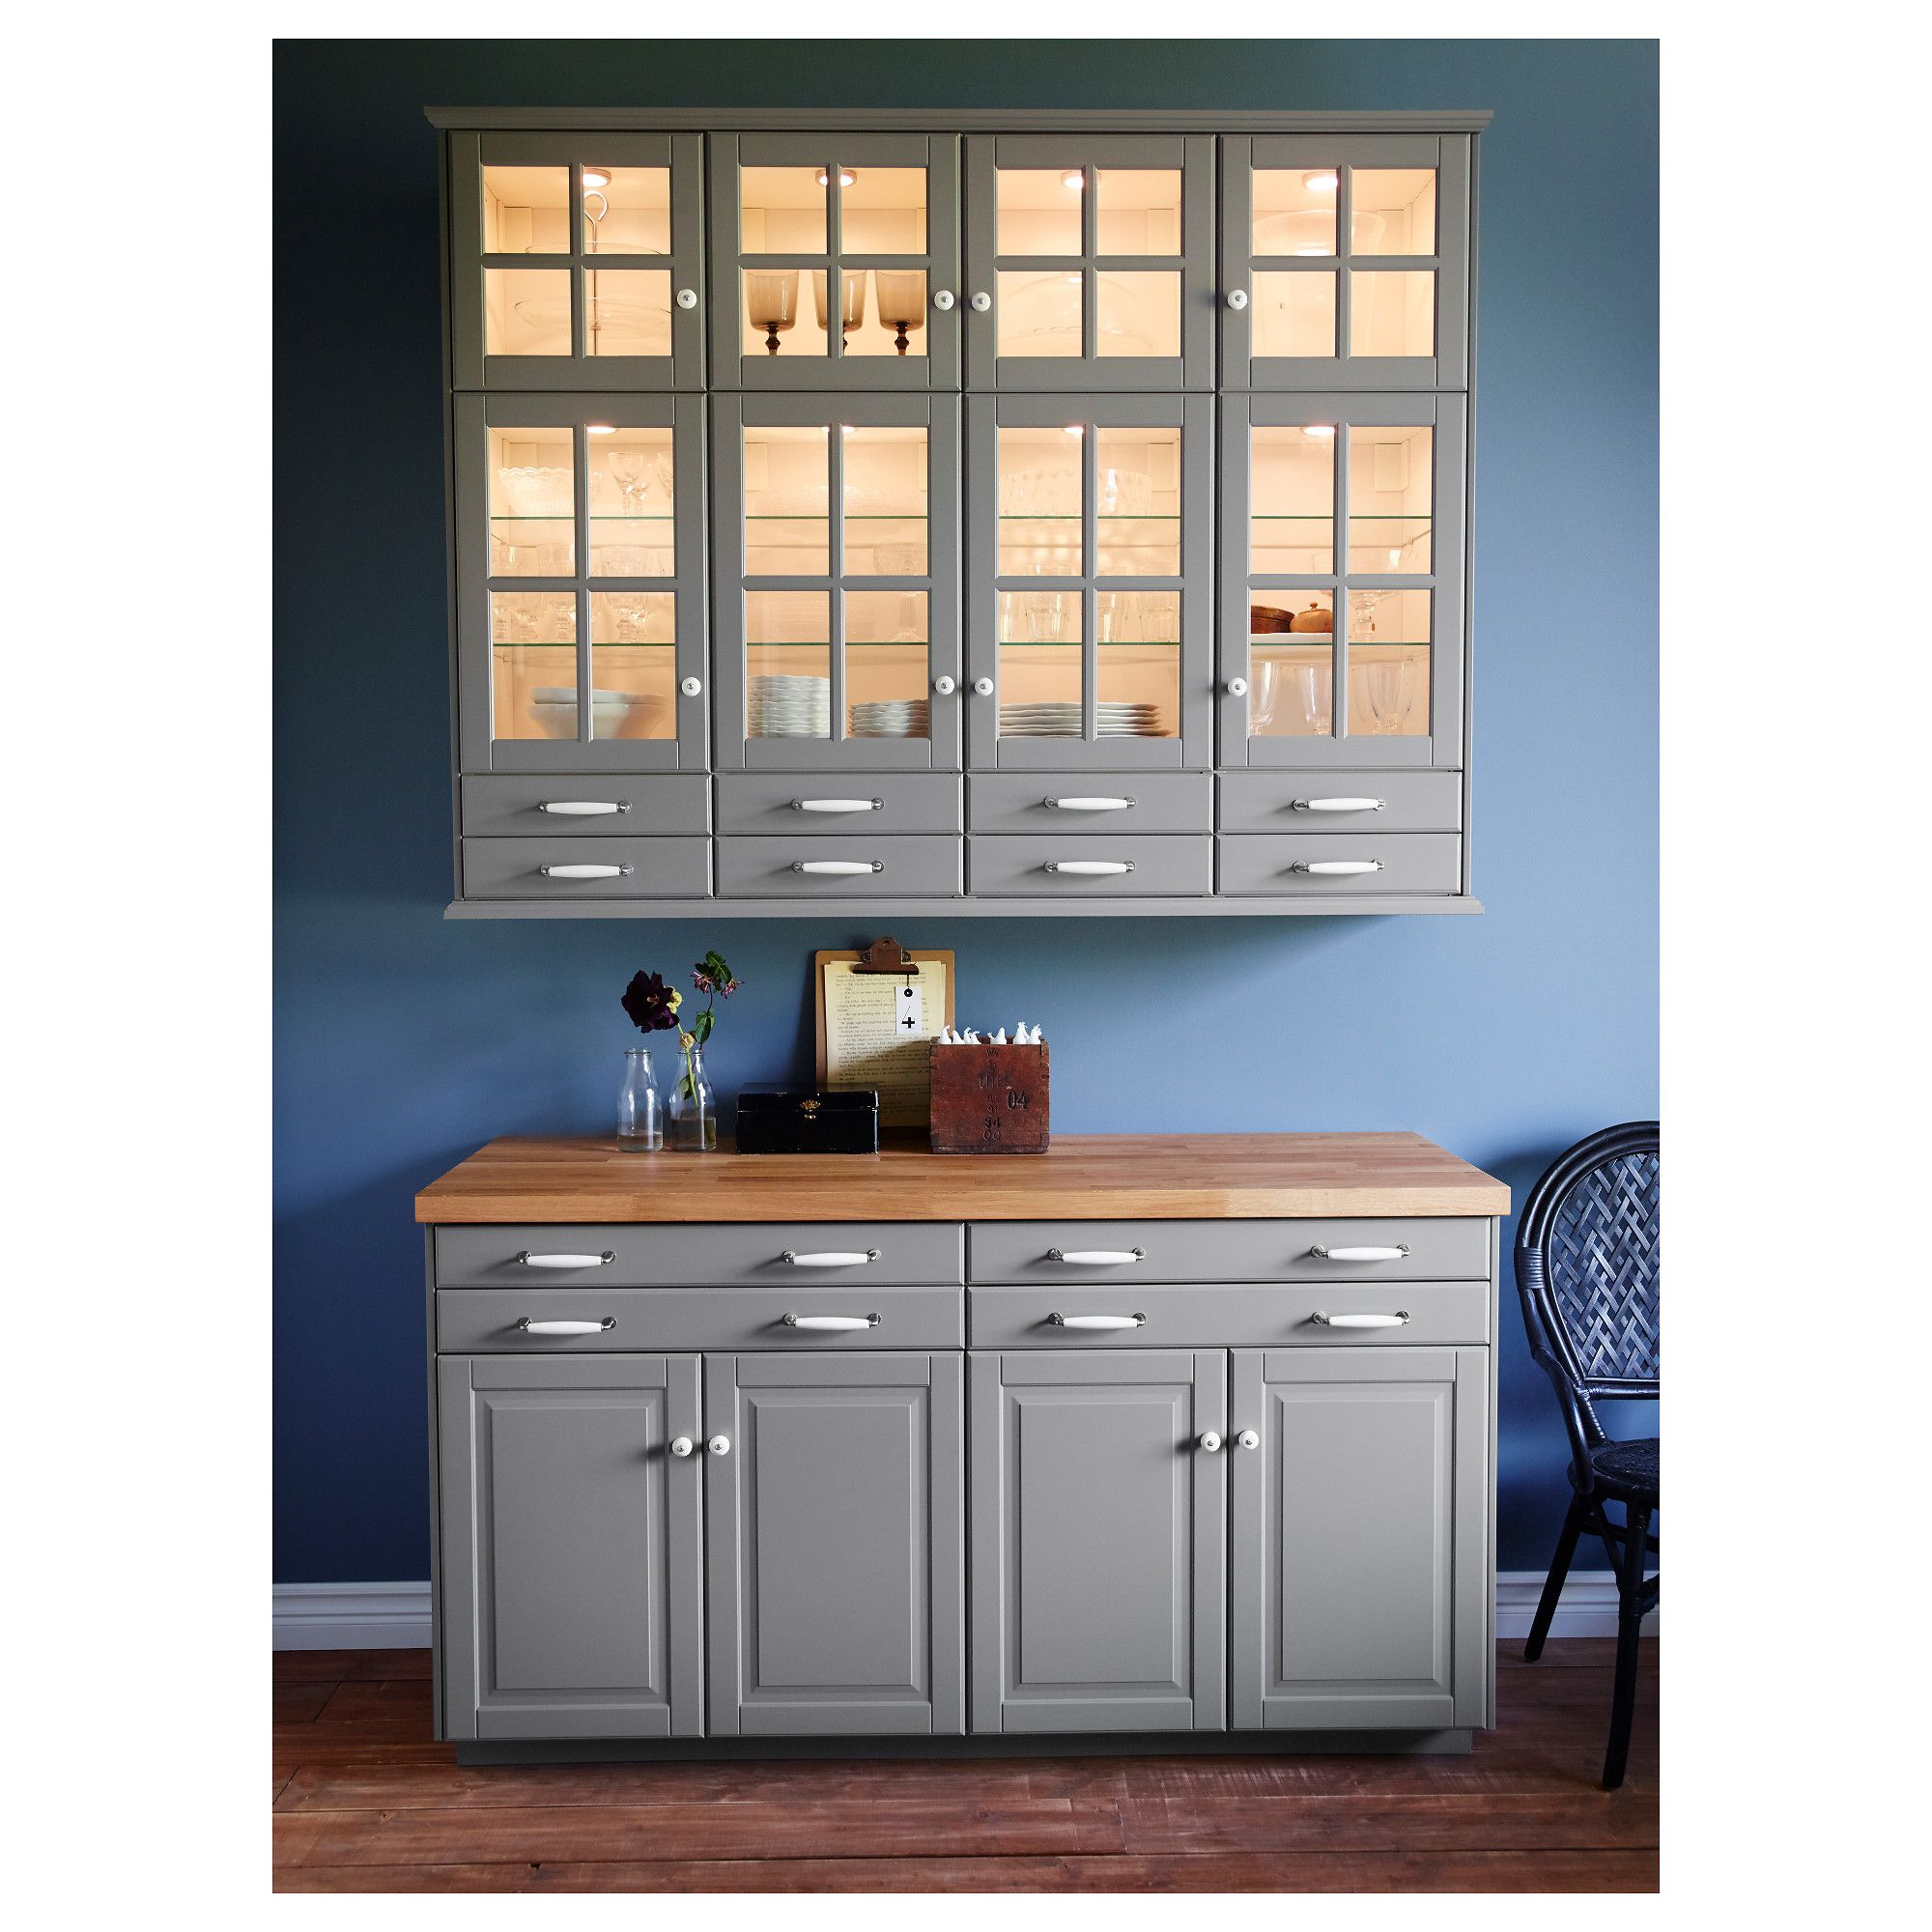 Furniture and Home Furnishings | Kitchen wall cabinets ...